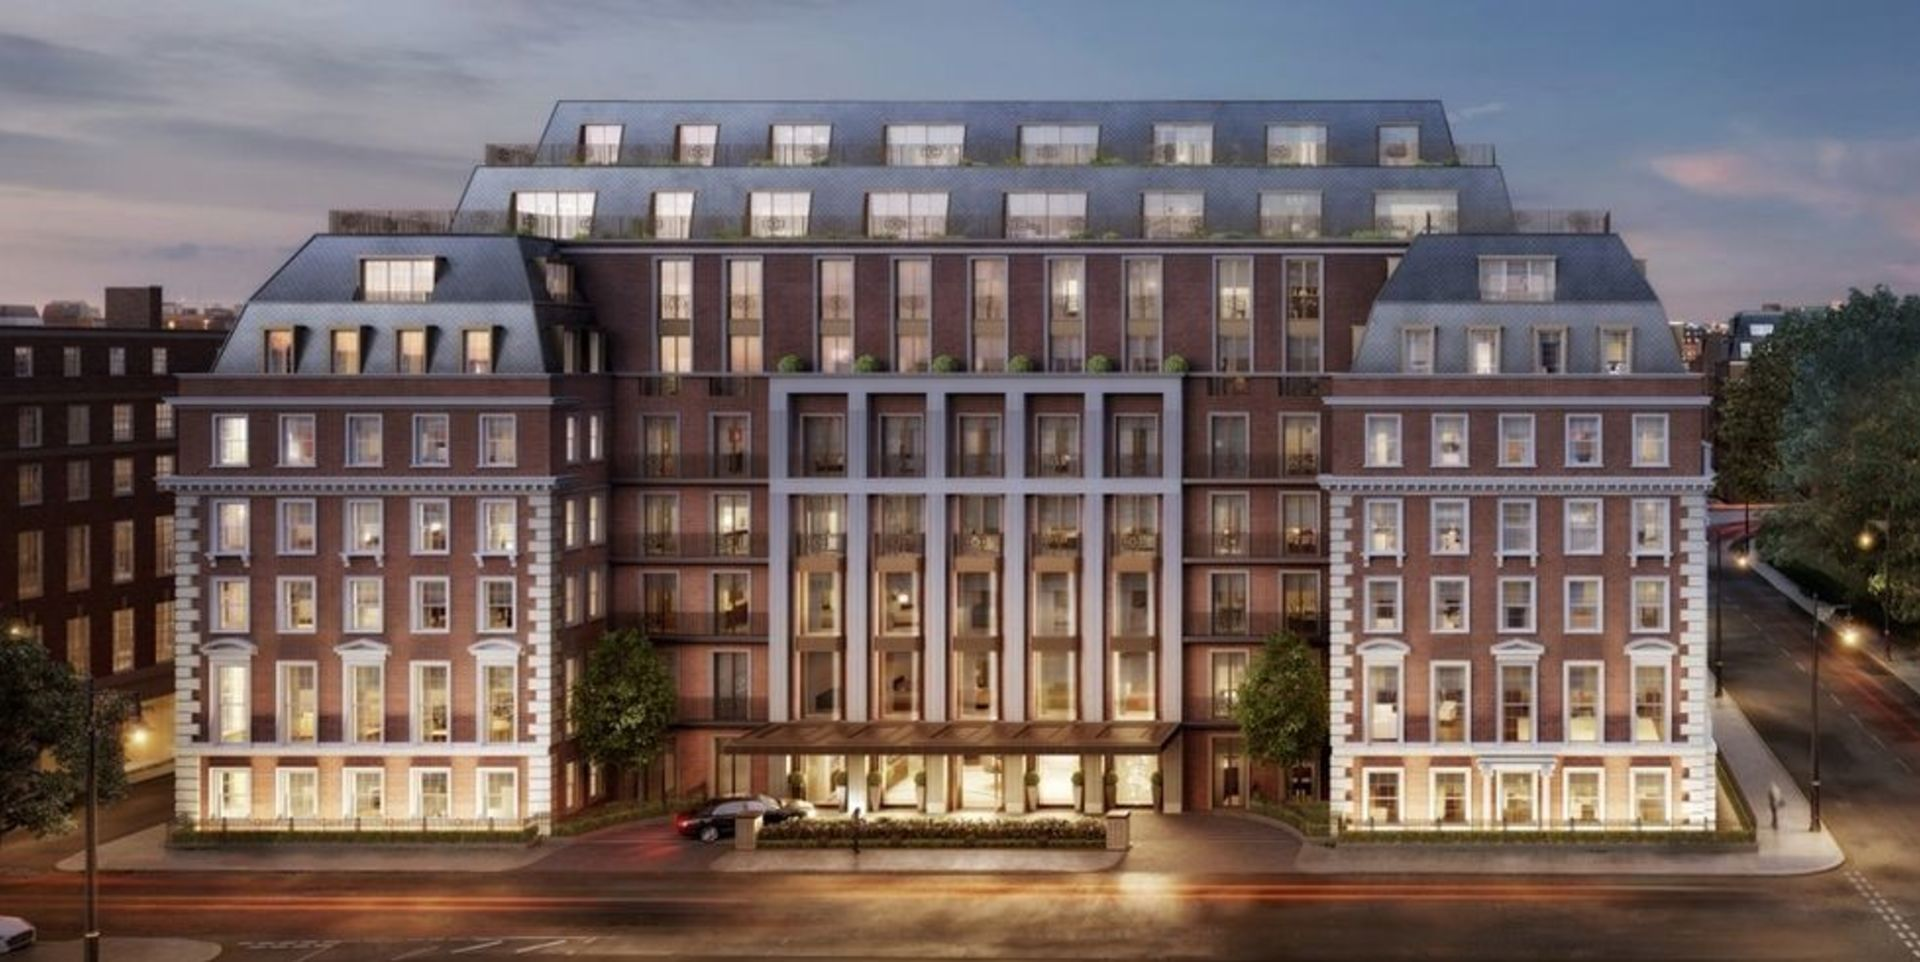 FOUR SEASONS APARTMENTS ARE OFFICIALLY COMING TO LONDON